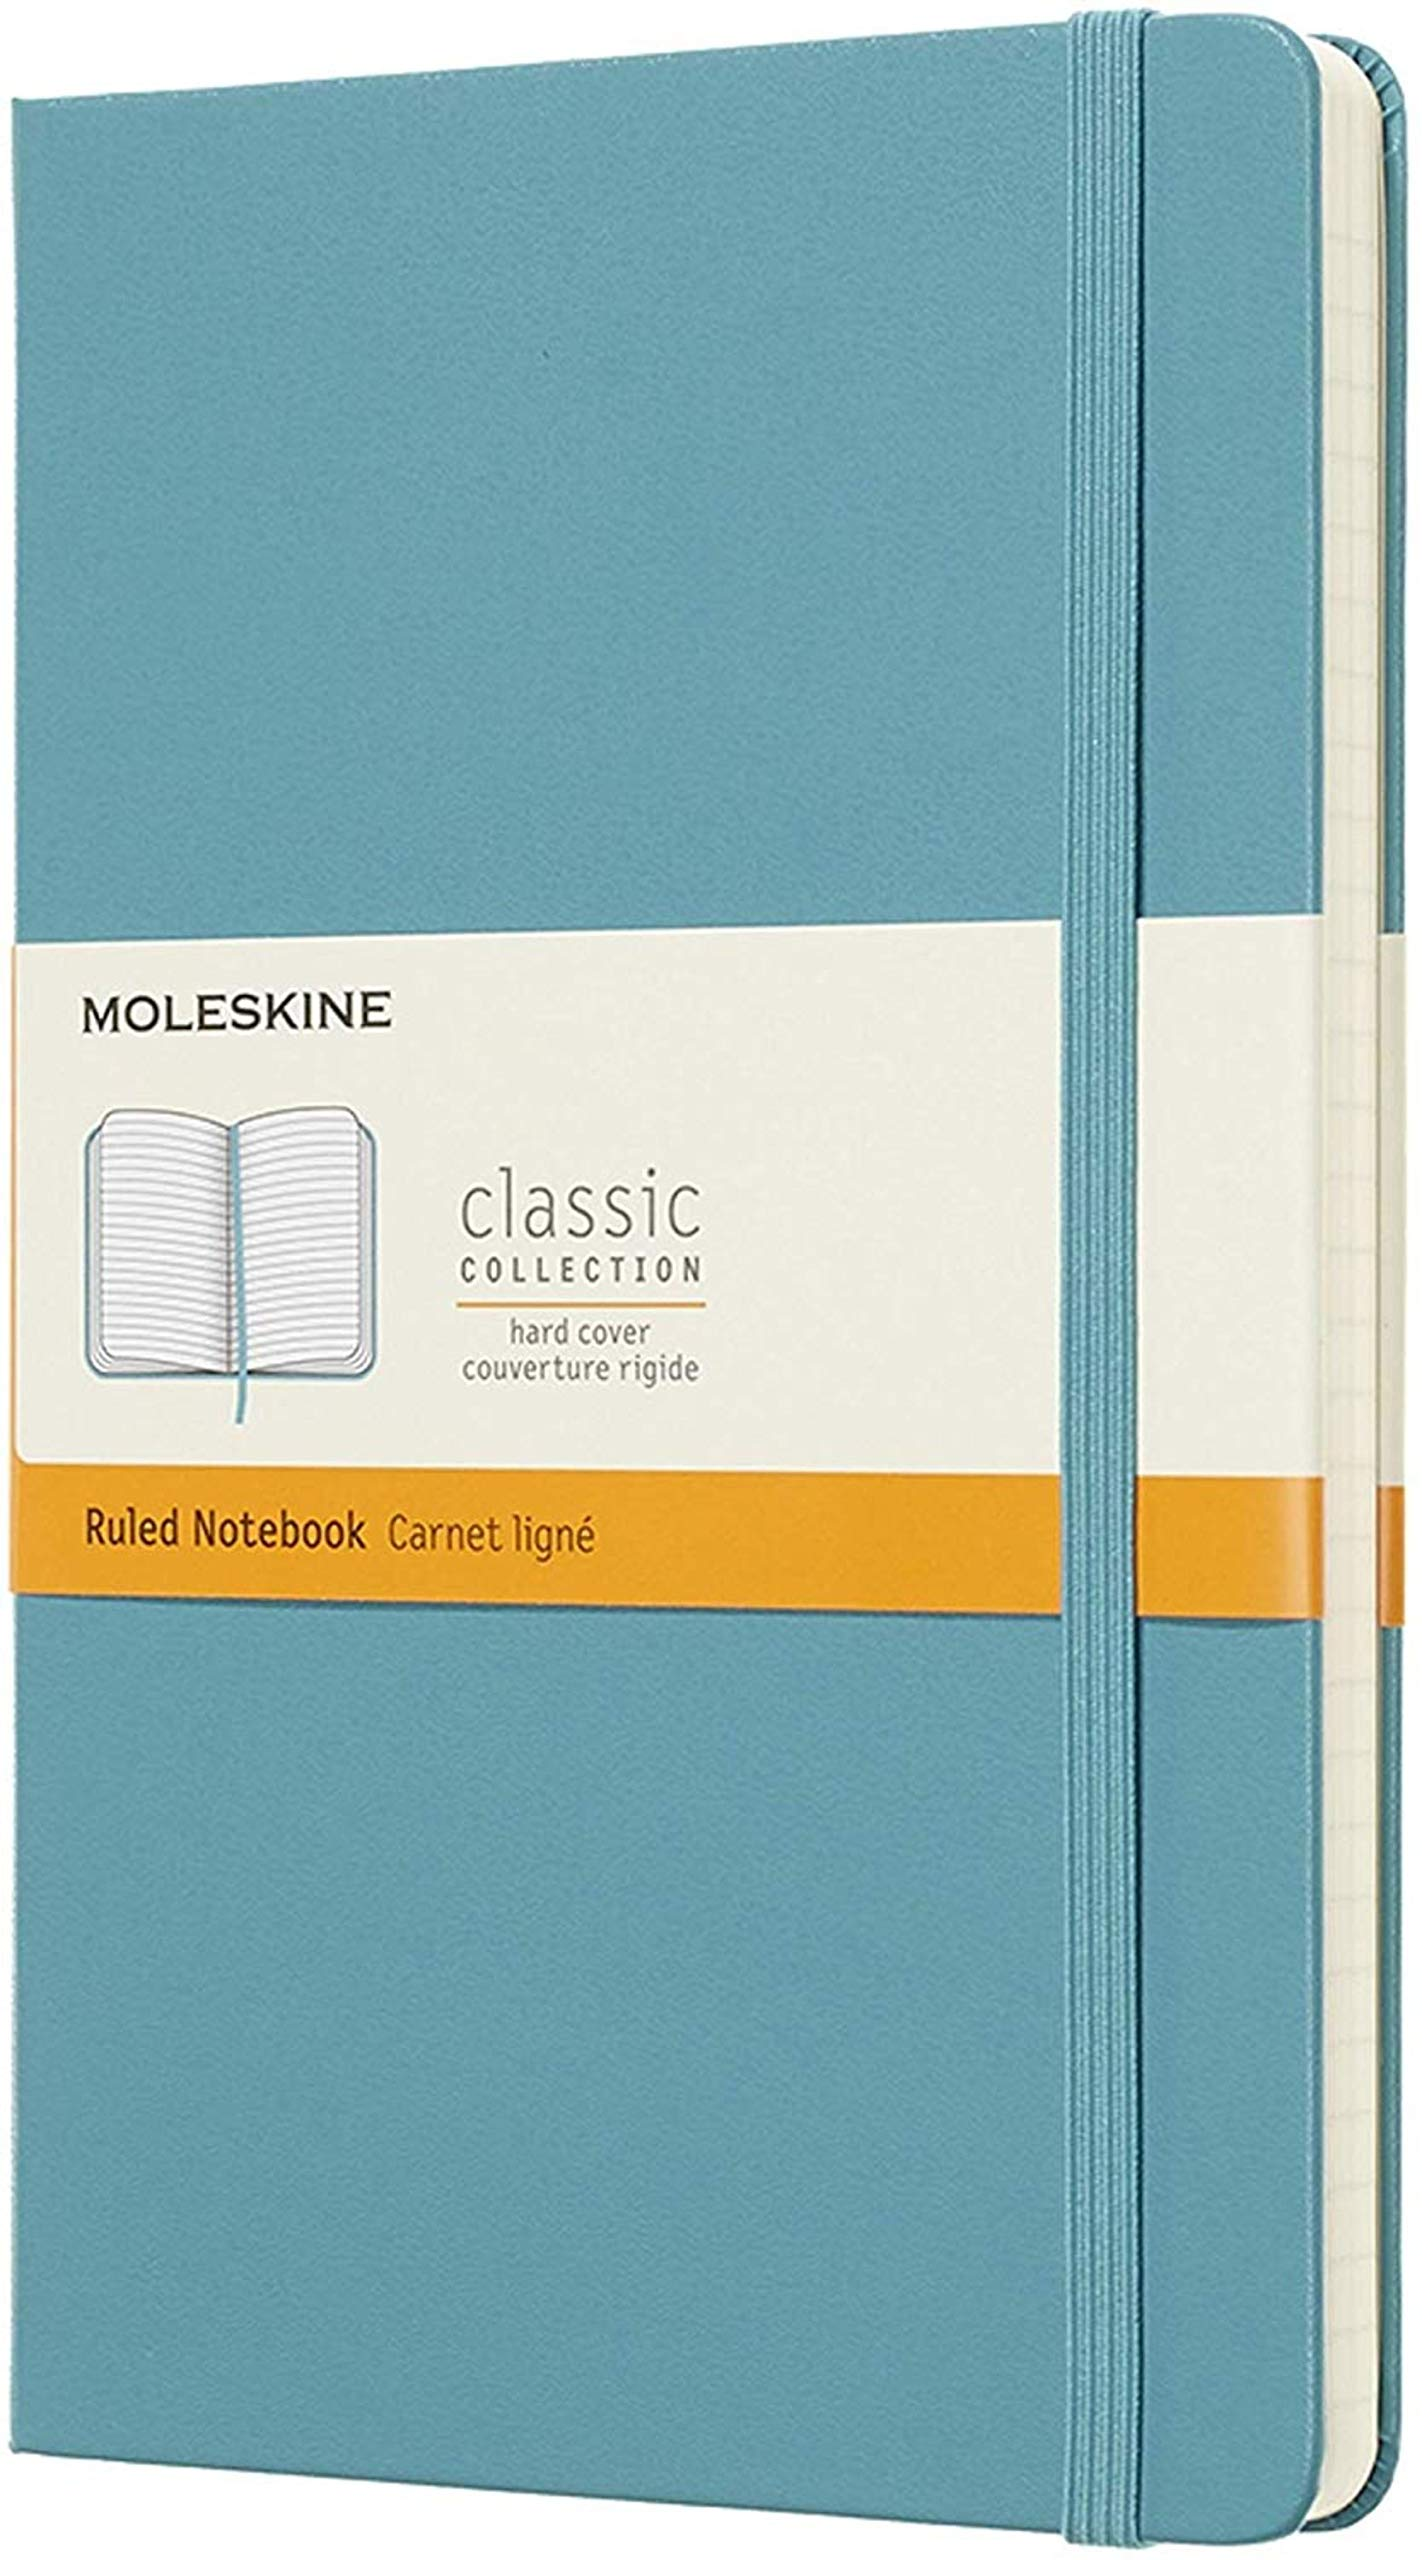 """Moleskine - Moleskine Classic Notebook, Hard Cover, Large (5"""" x 8.25"""") Ruled/Lined, Reef Blue, 240 Pages"""